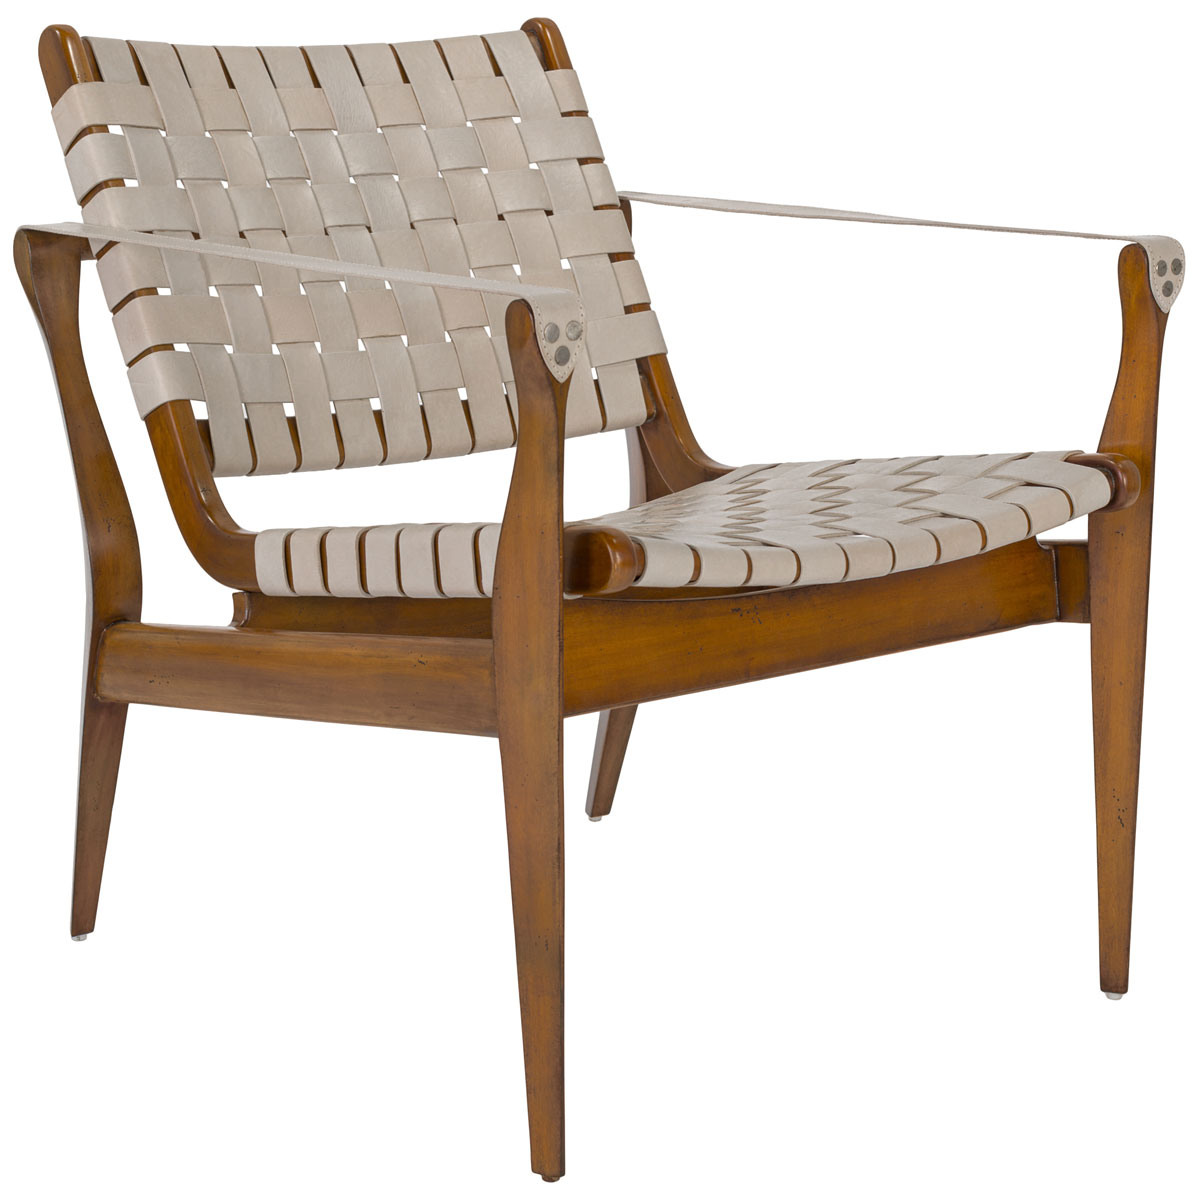 Safari Chair Woven Leather Safari Chair White Eclectic Goods